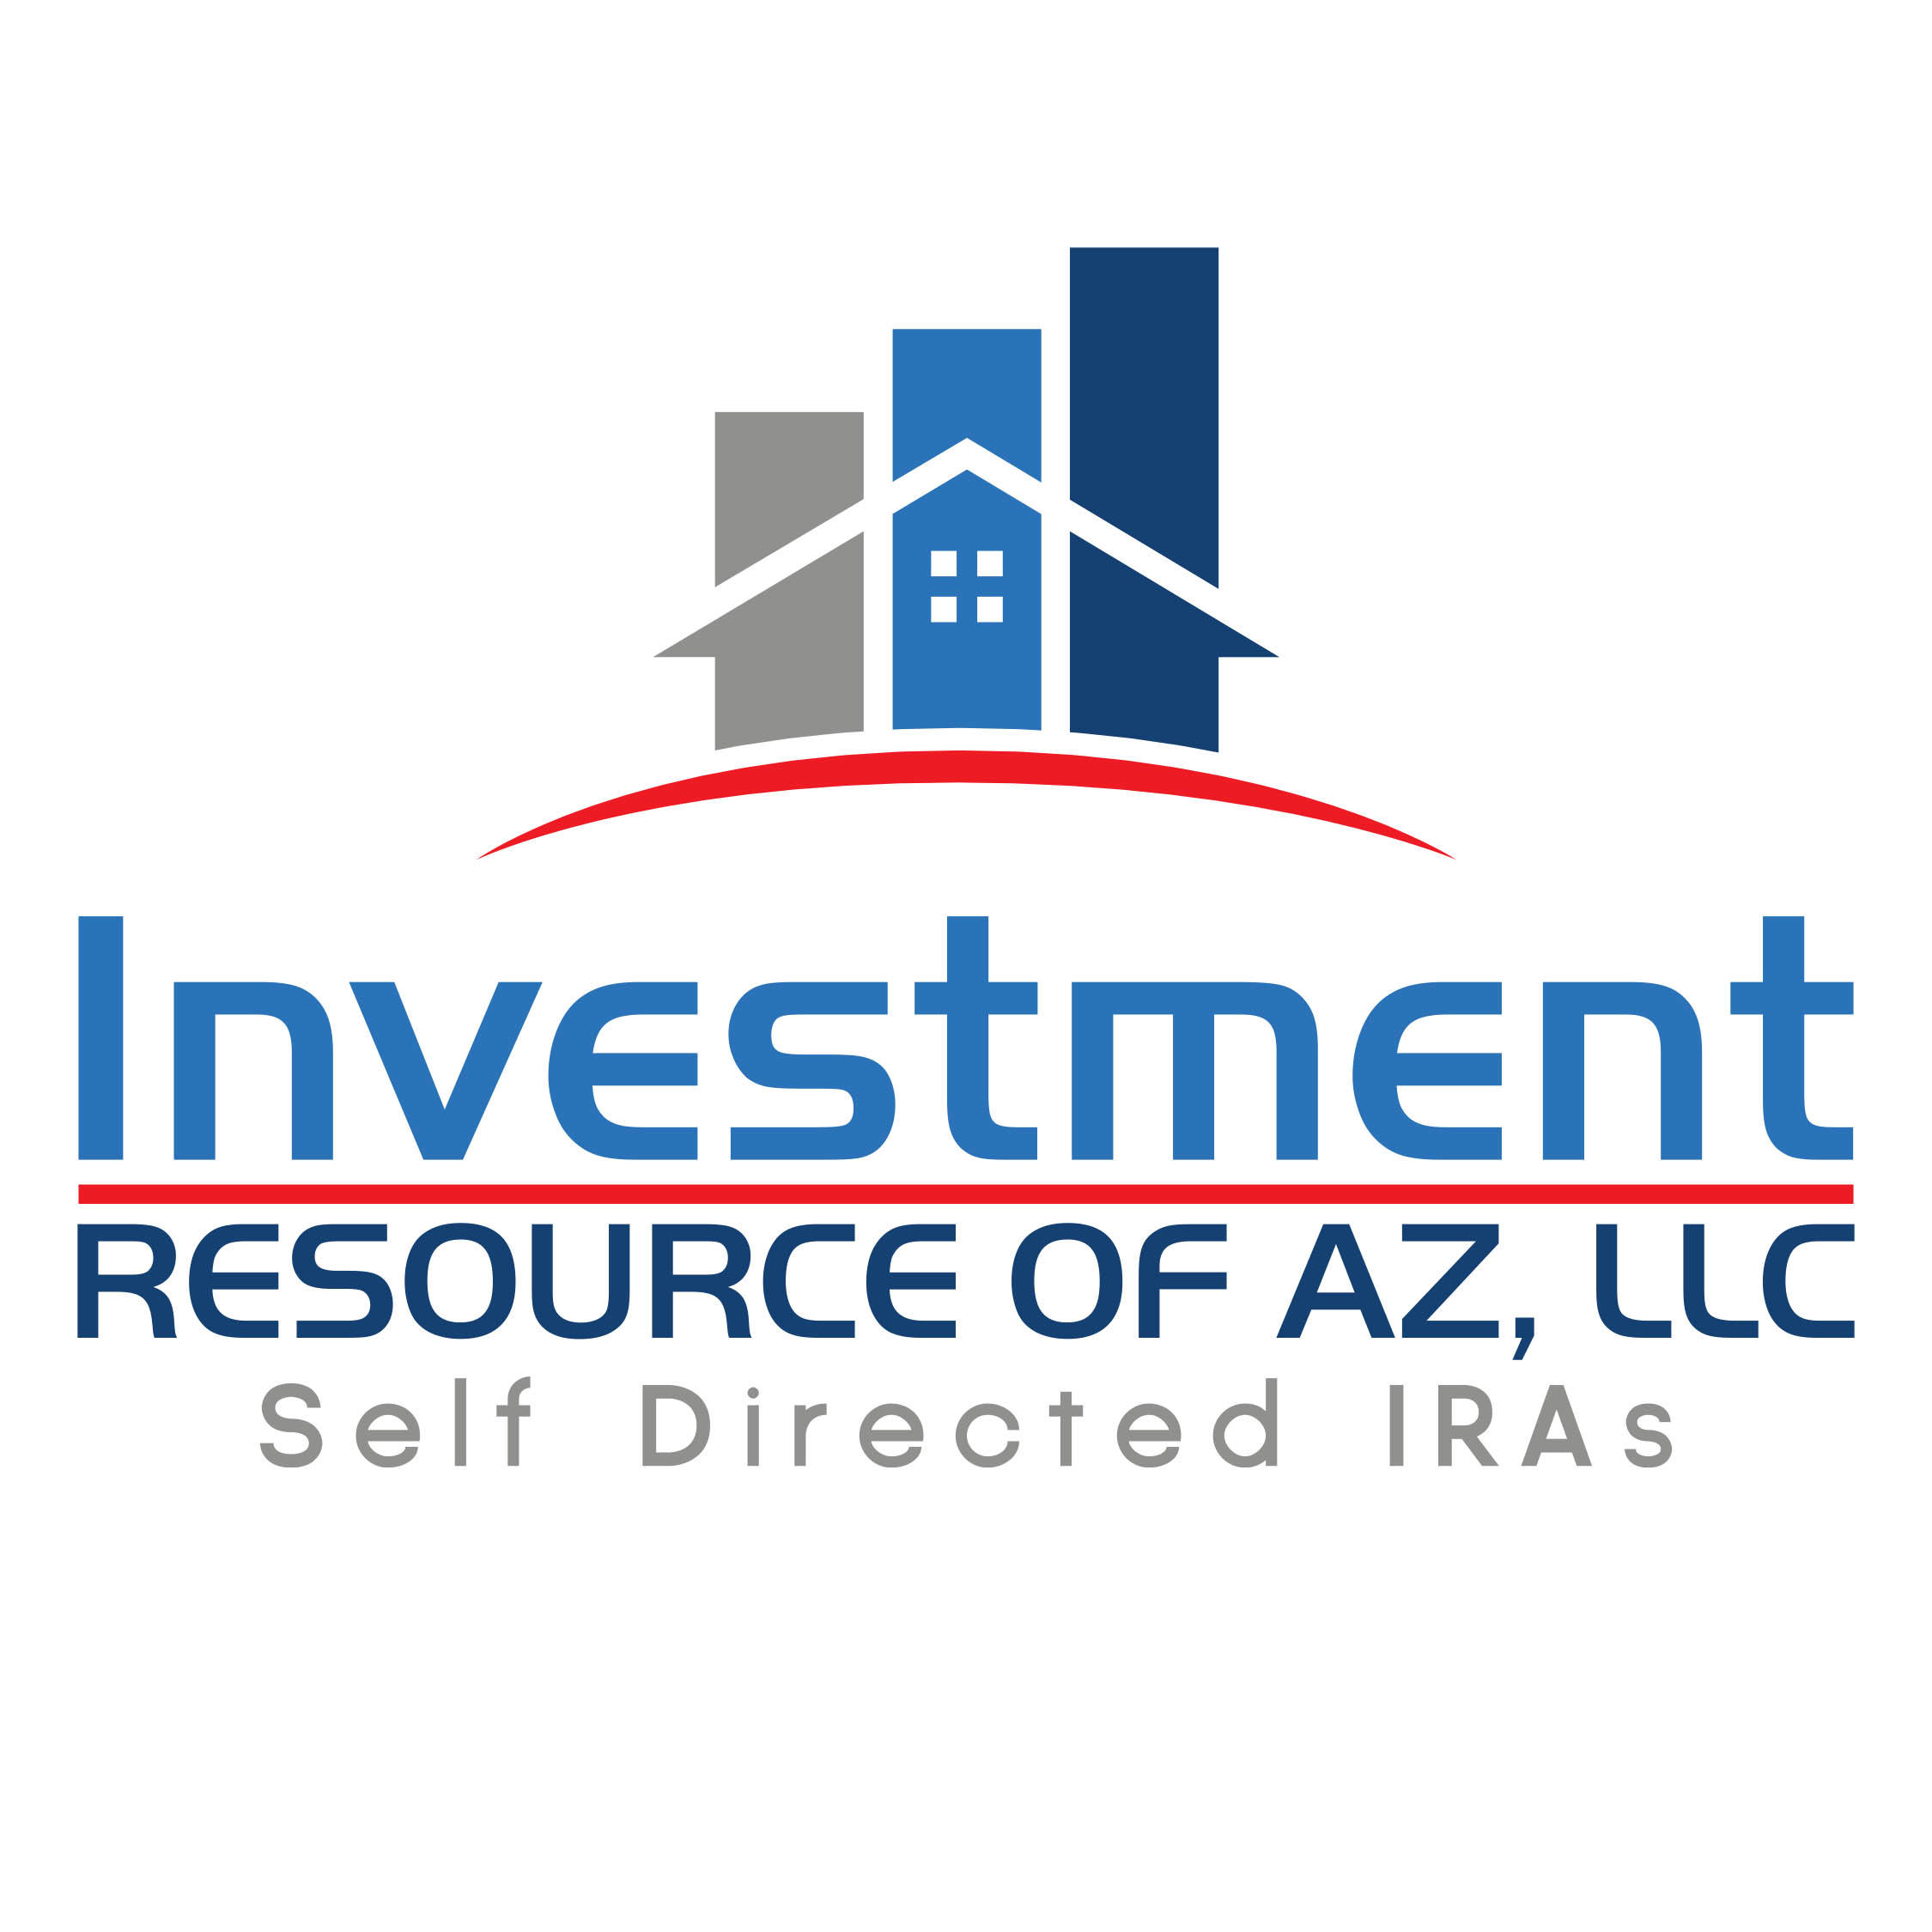 Investment Resource of AZ, LLC